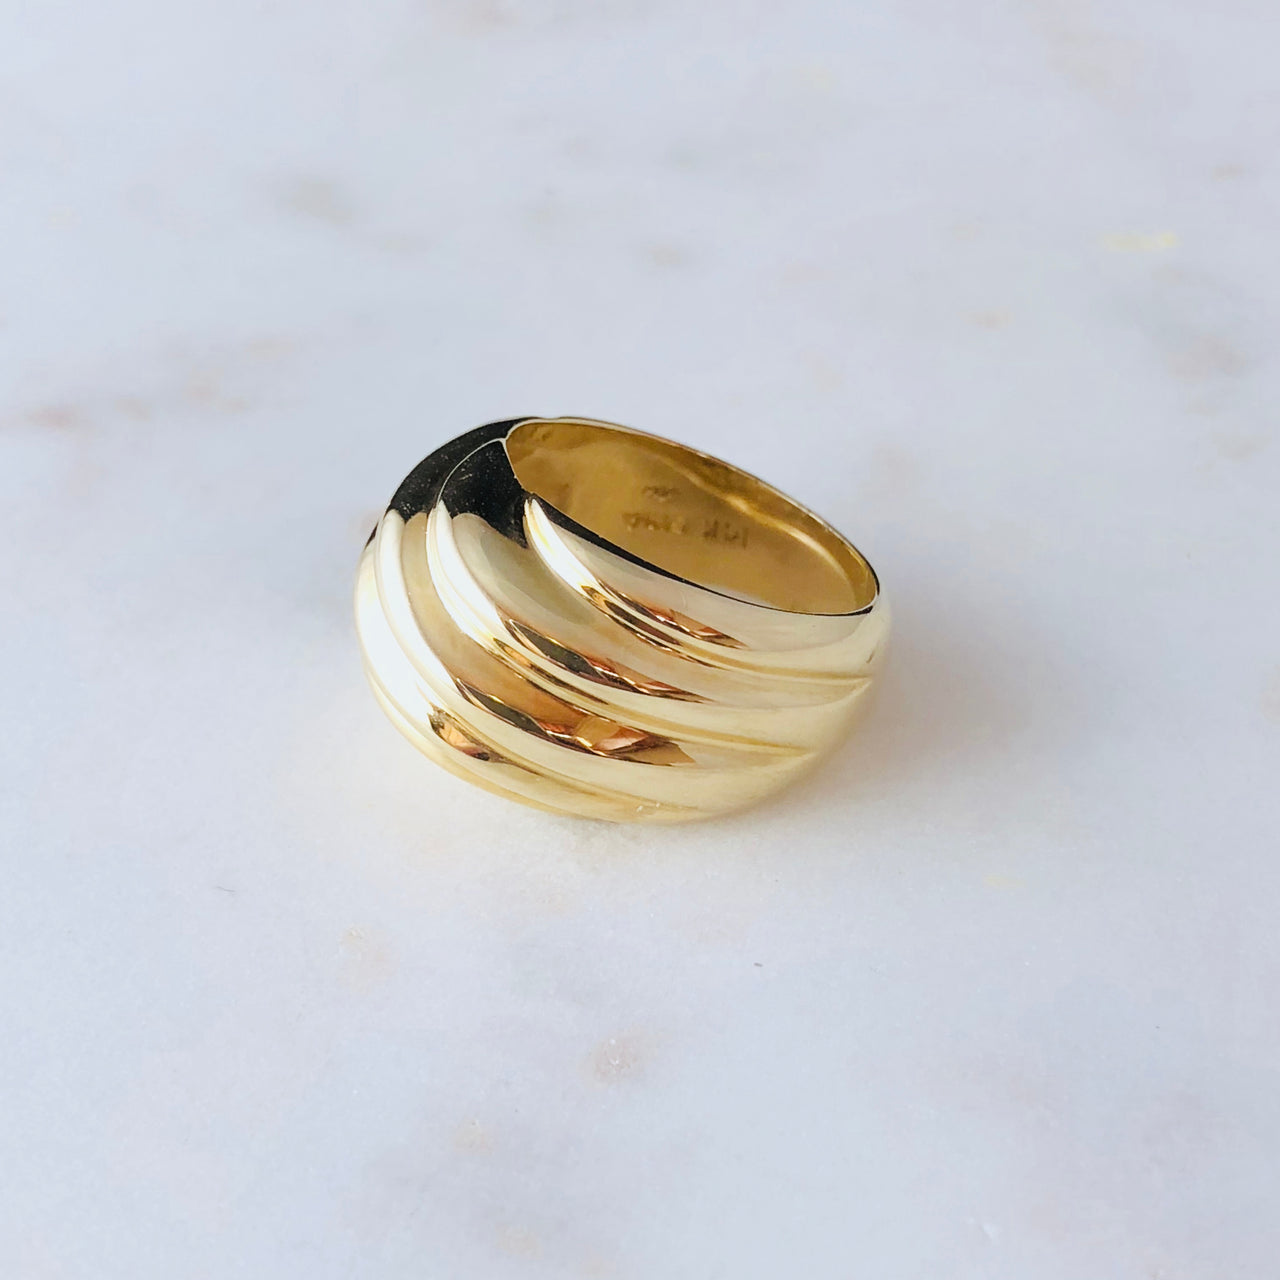 14K Yellow Gold Dome Ring.